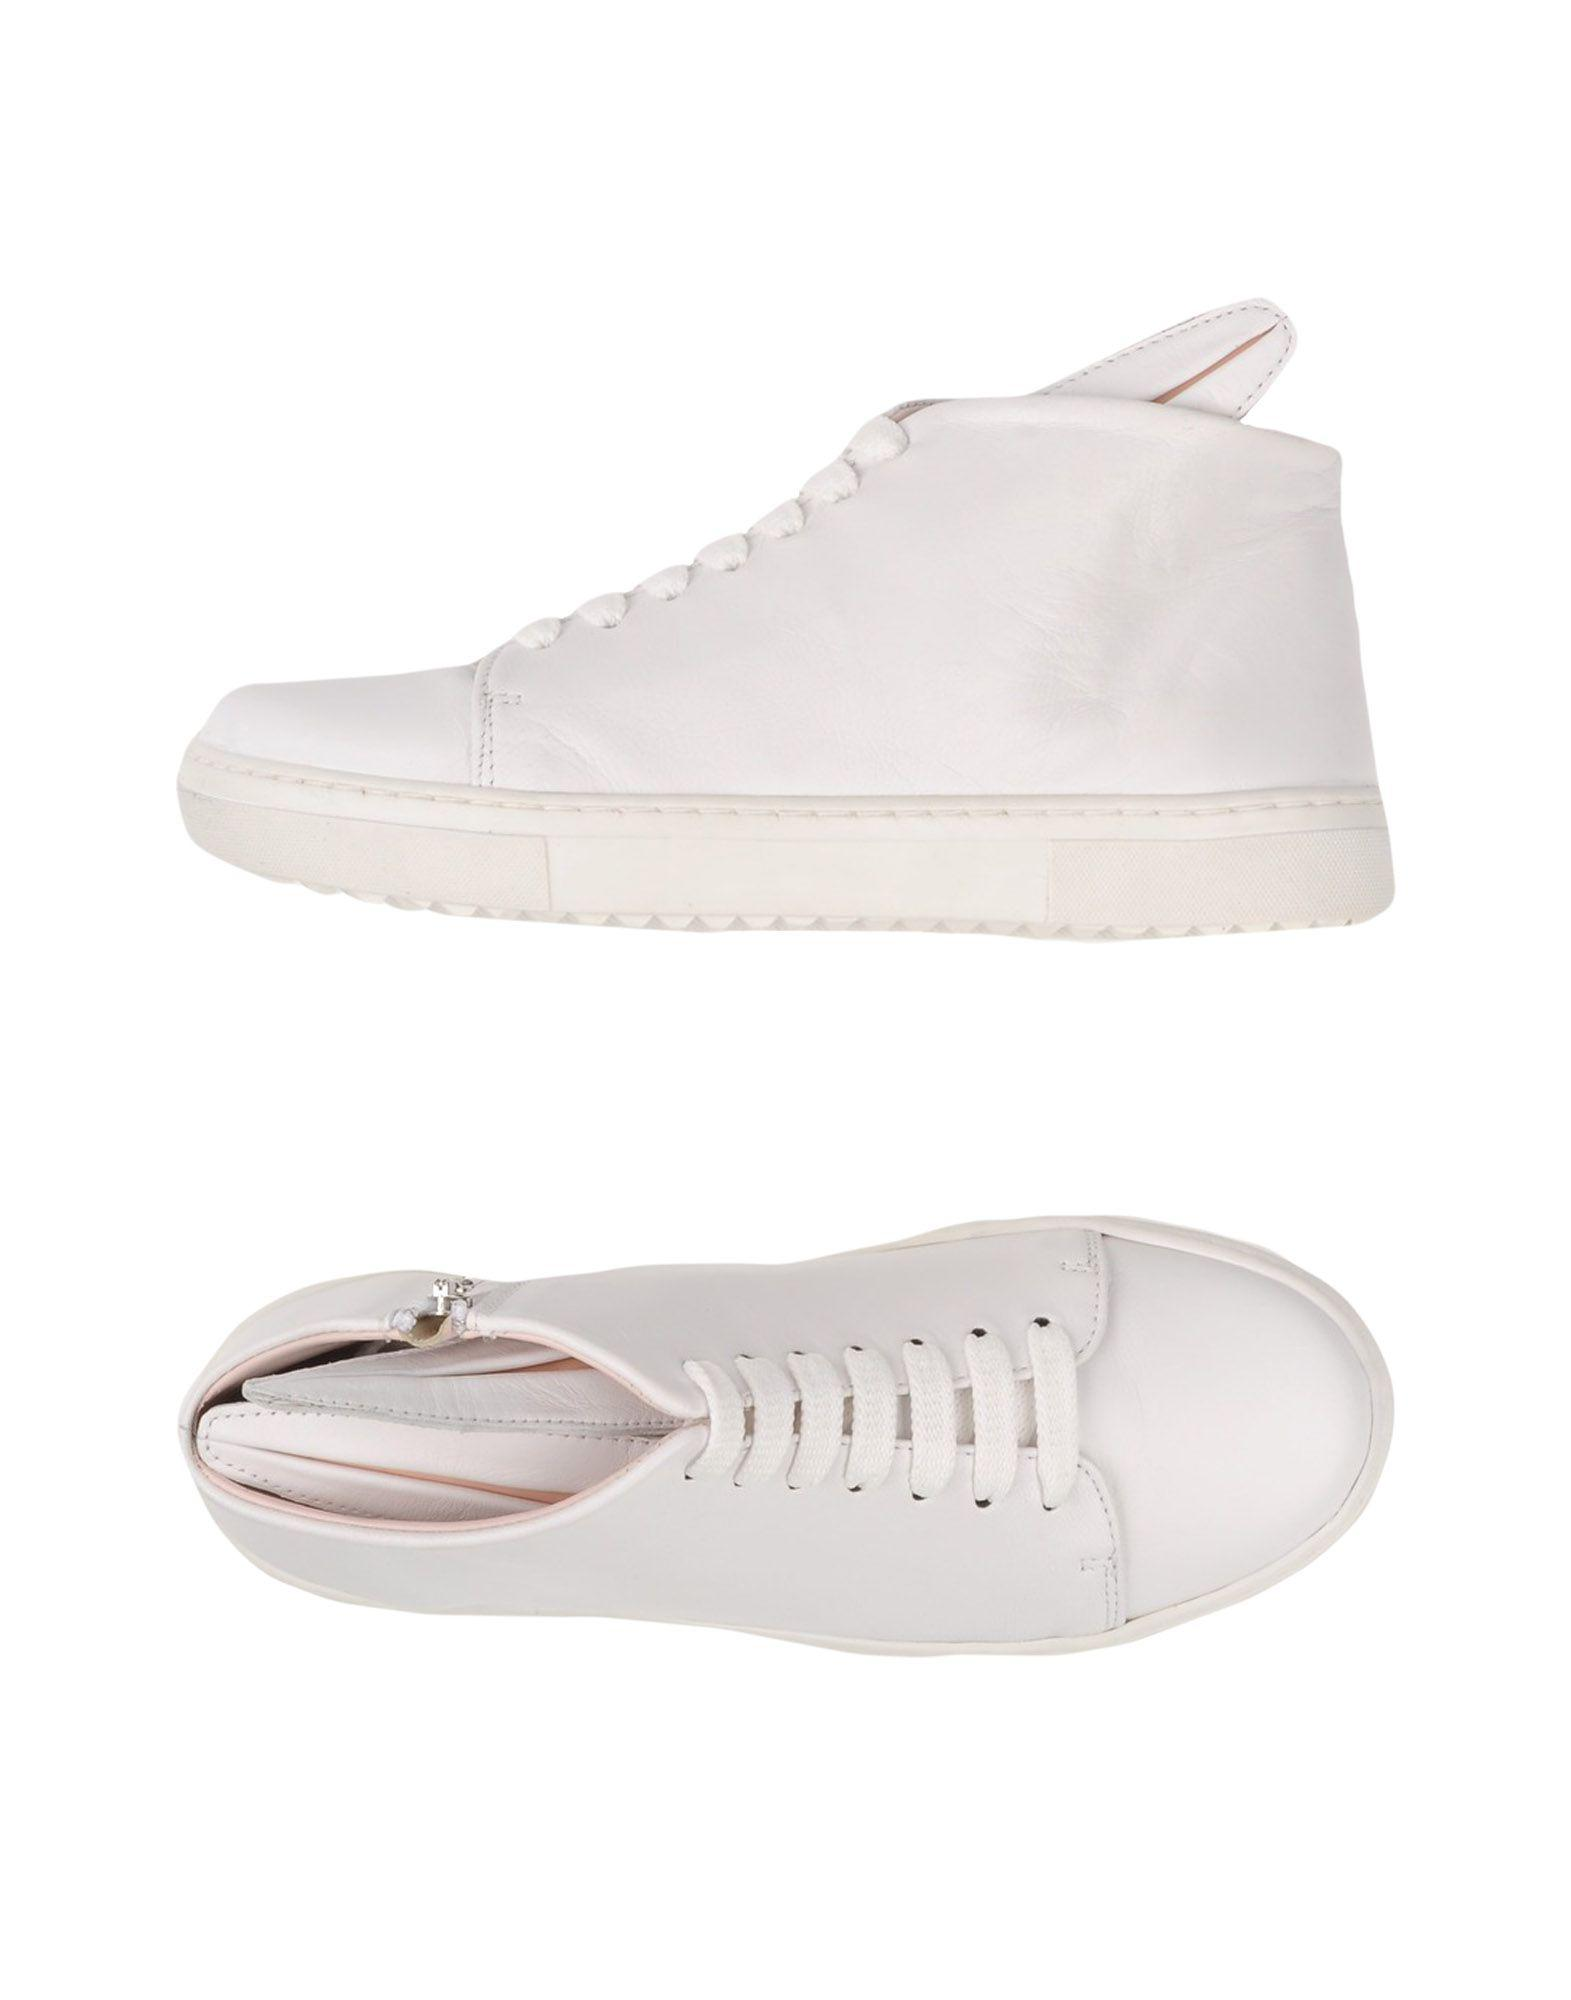 LOW TOP SNEAKER WITH BUNNY EARS - FOOTWEAR - Low-tops & sneakers Minna Parikka